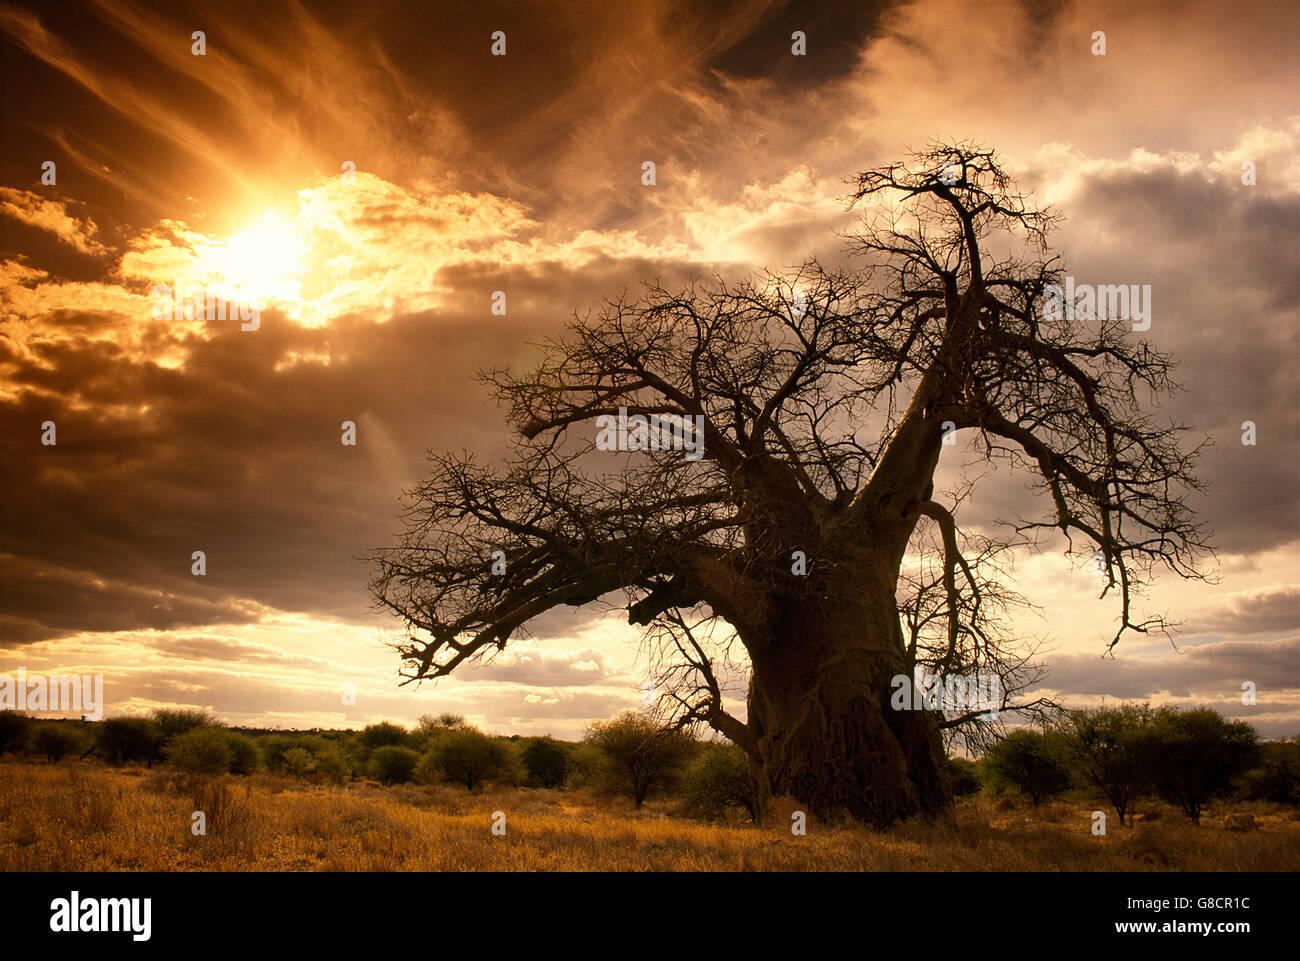 Baobab tree & golden sunlight, South African World Heritage Site, The Kingdom of Mapungubwe, South Africa. - Stock Image